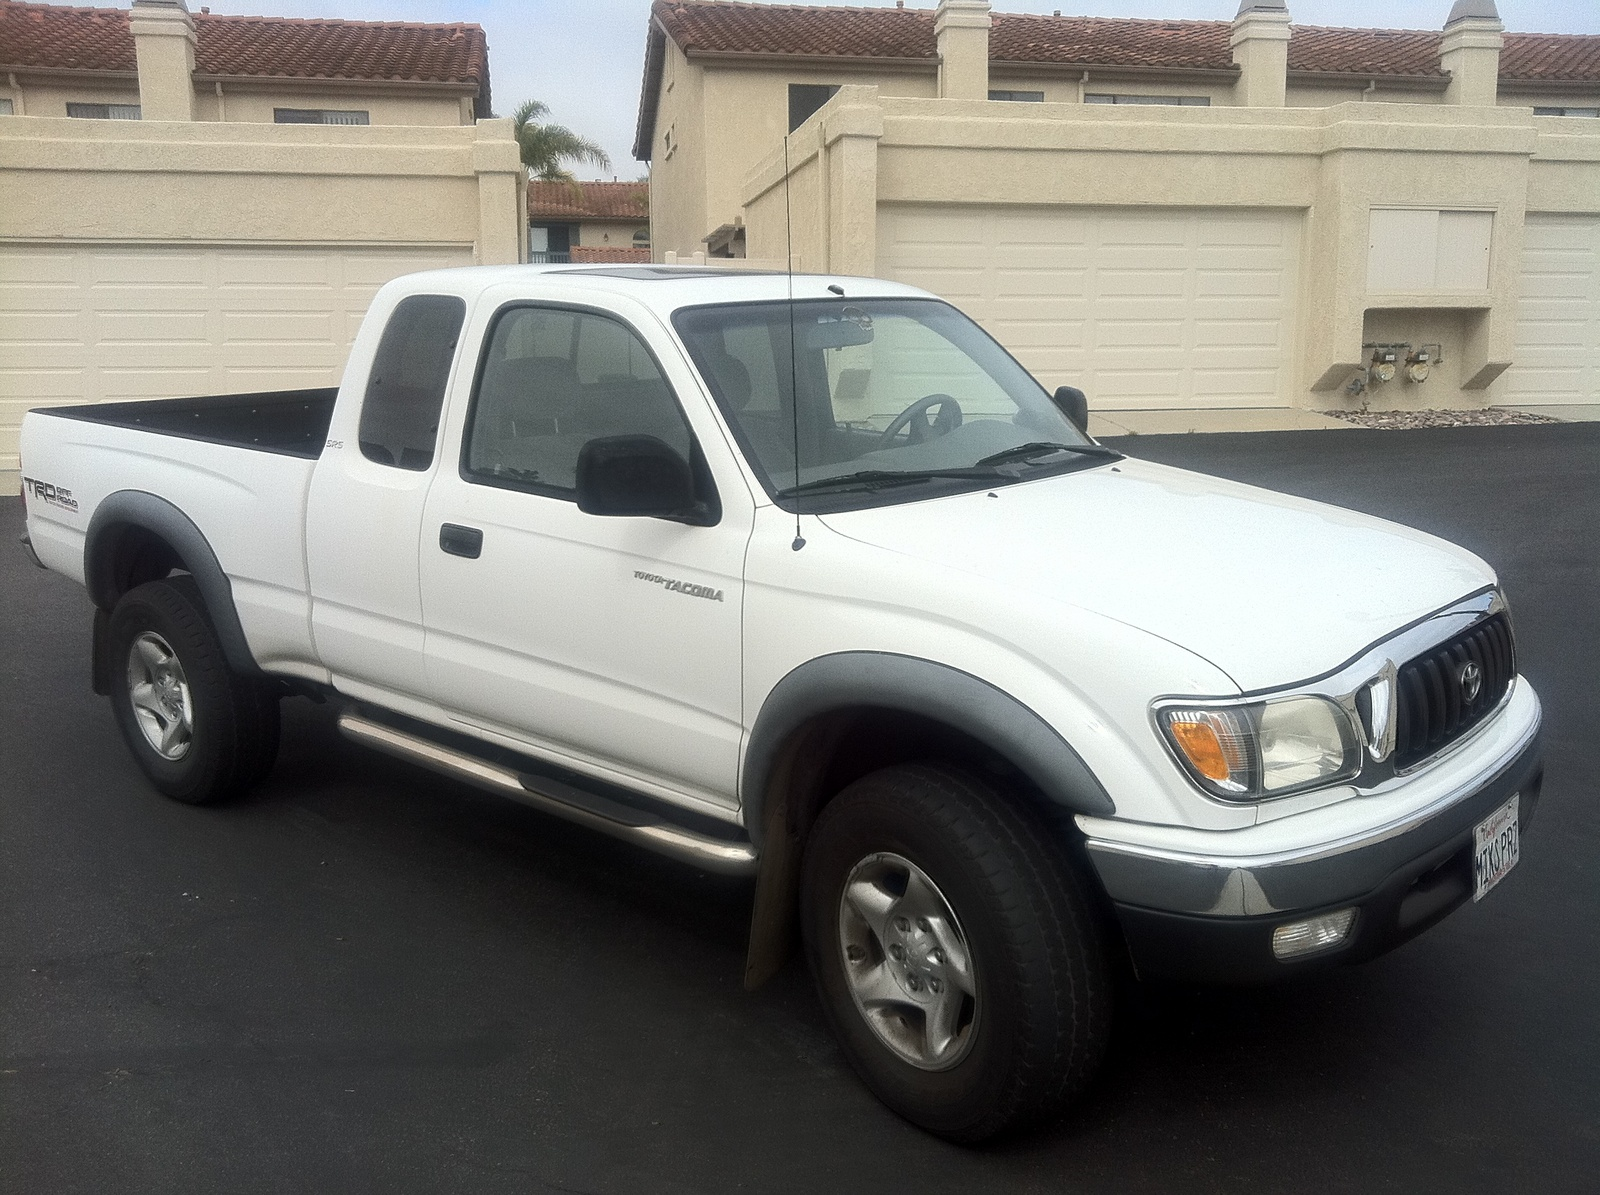 Famous picture of 2001 toyota tacoma 4 dr prerunner v6 - 2001 toyota tacoma interior parts ...